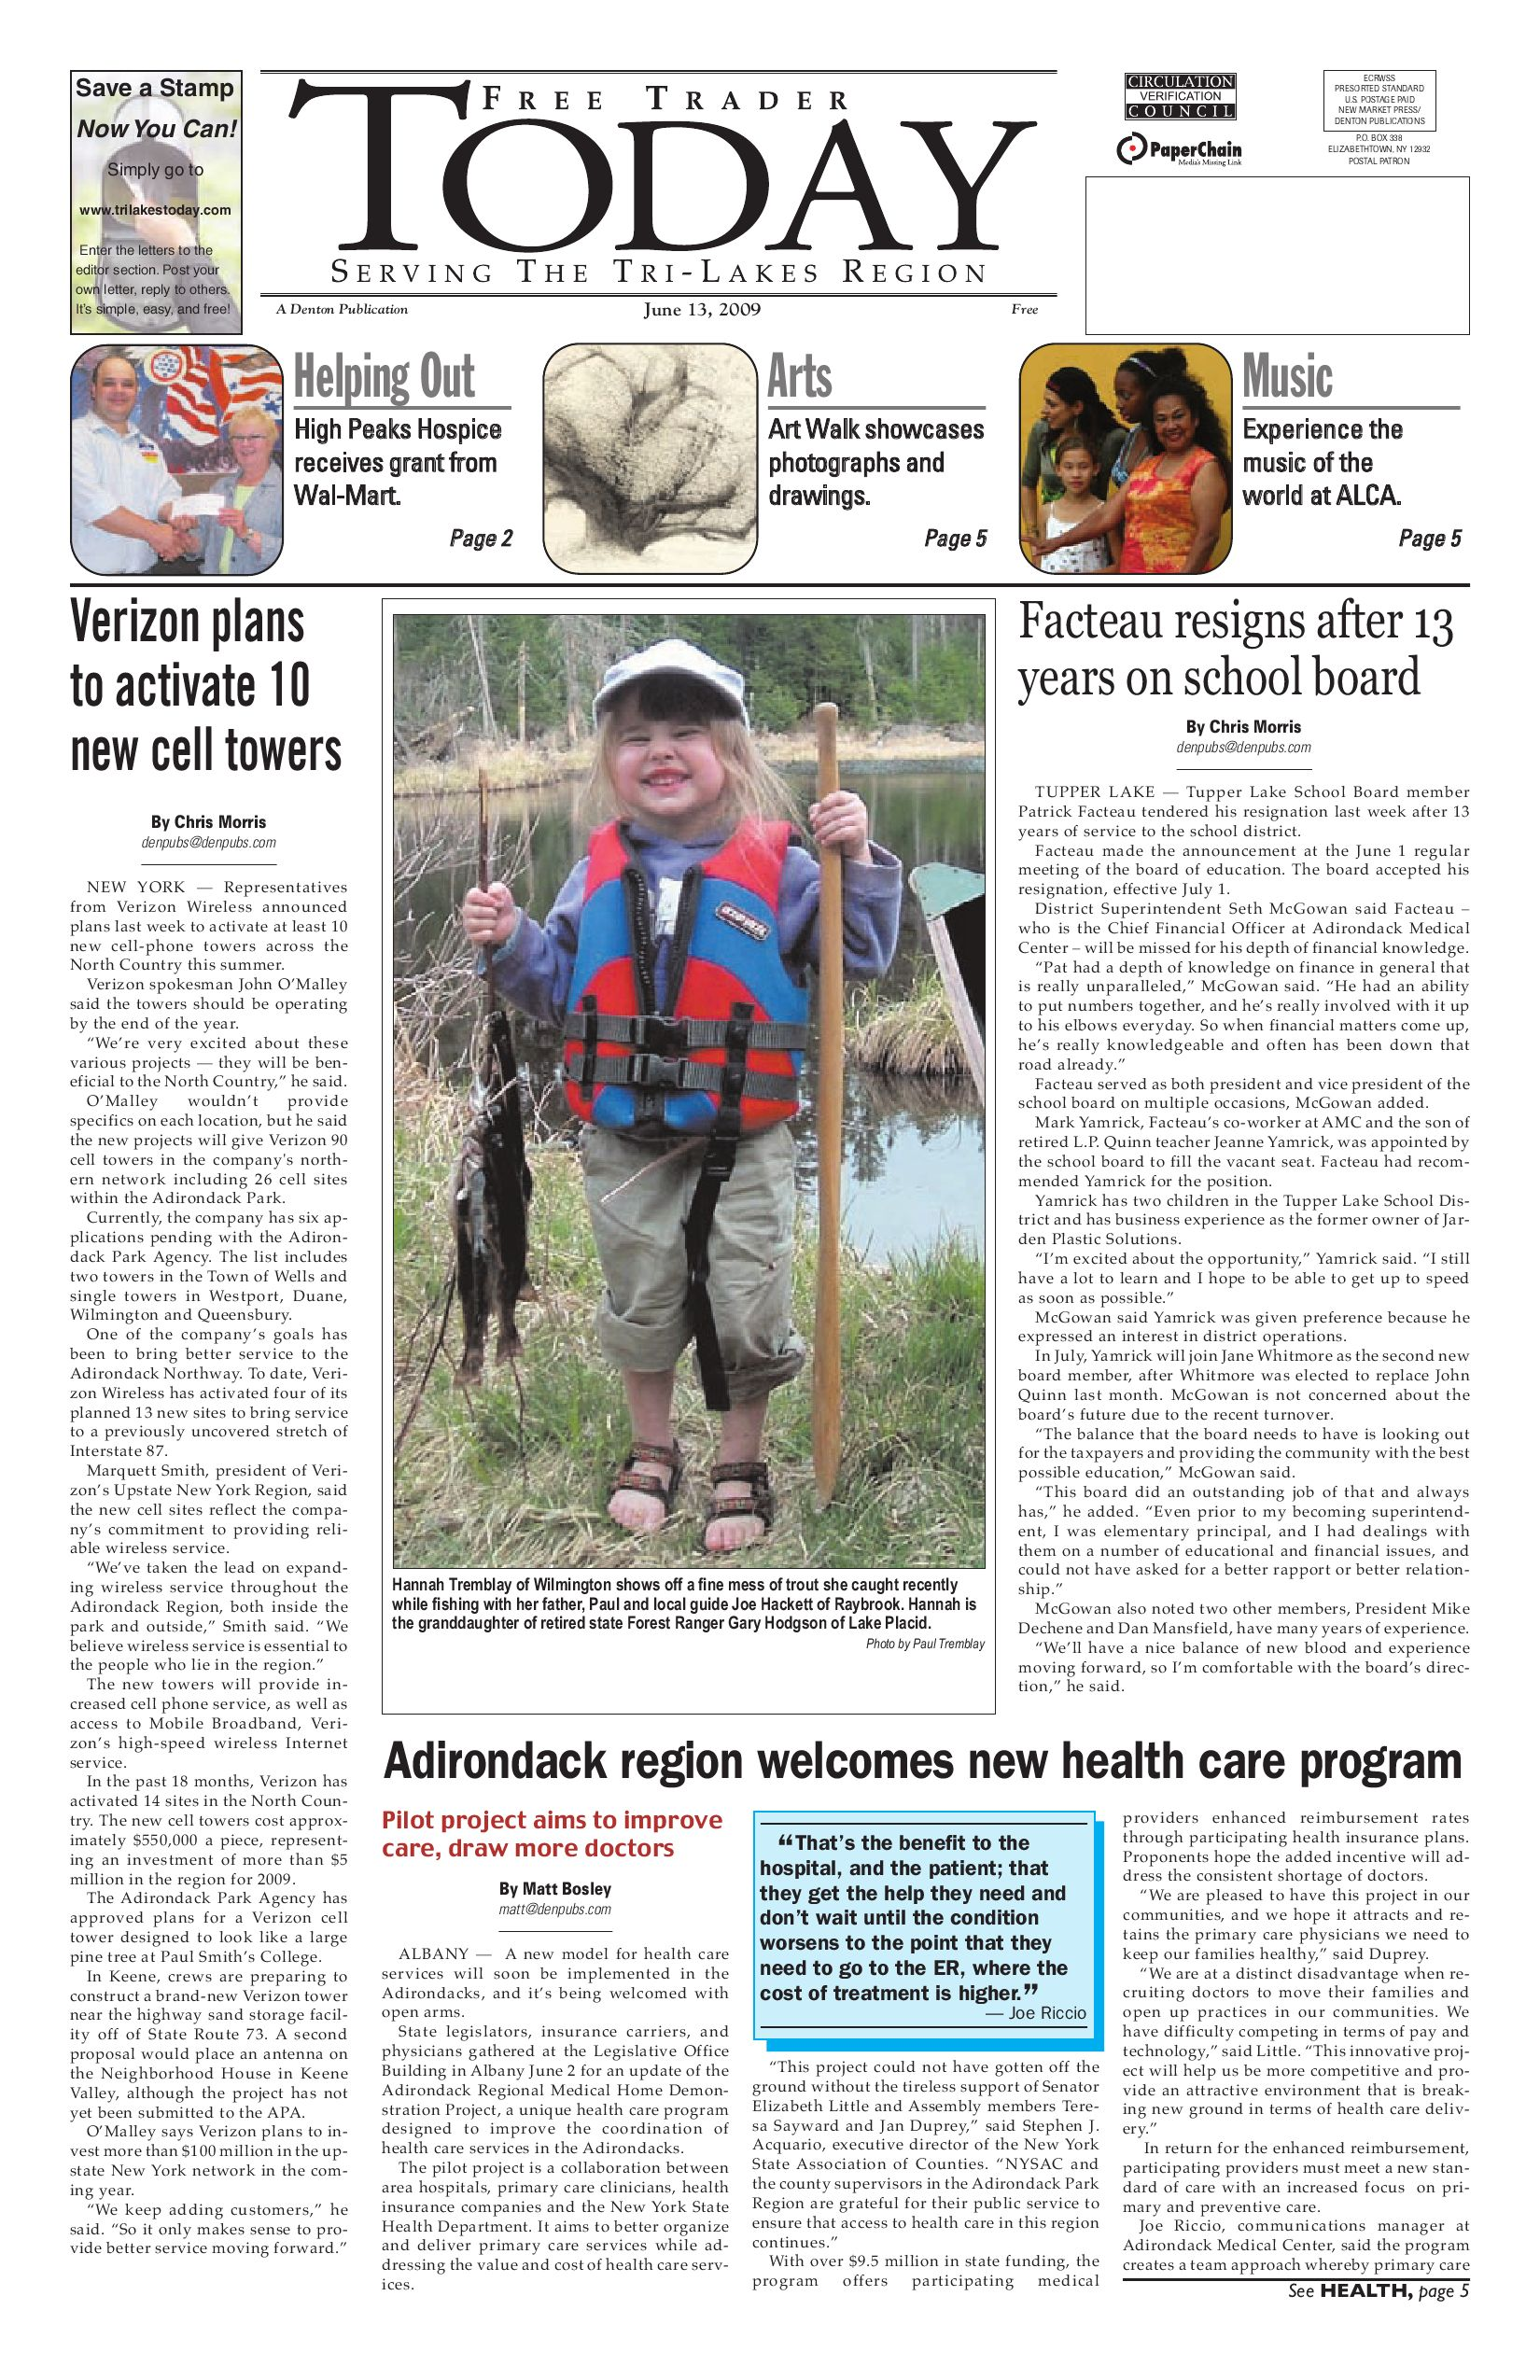 Trilakes Today 06 13 09 By Sun Community News And Printing Issuu